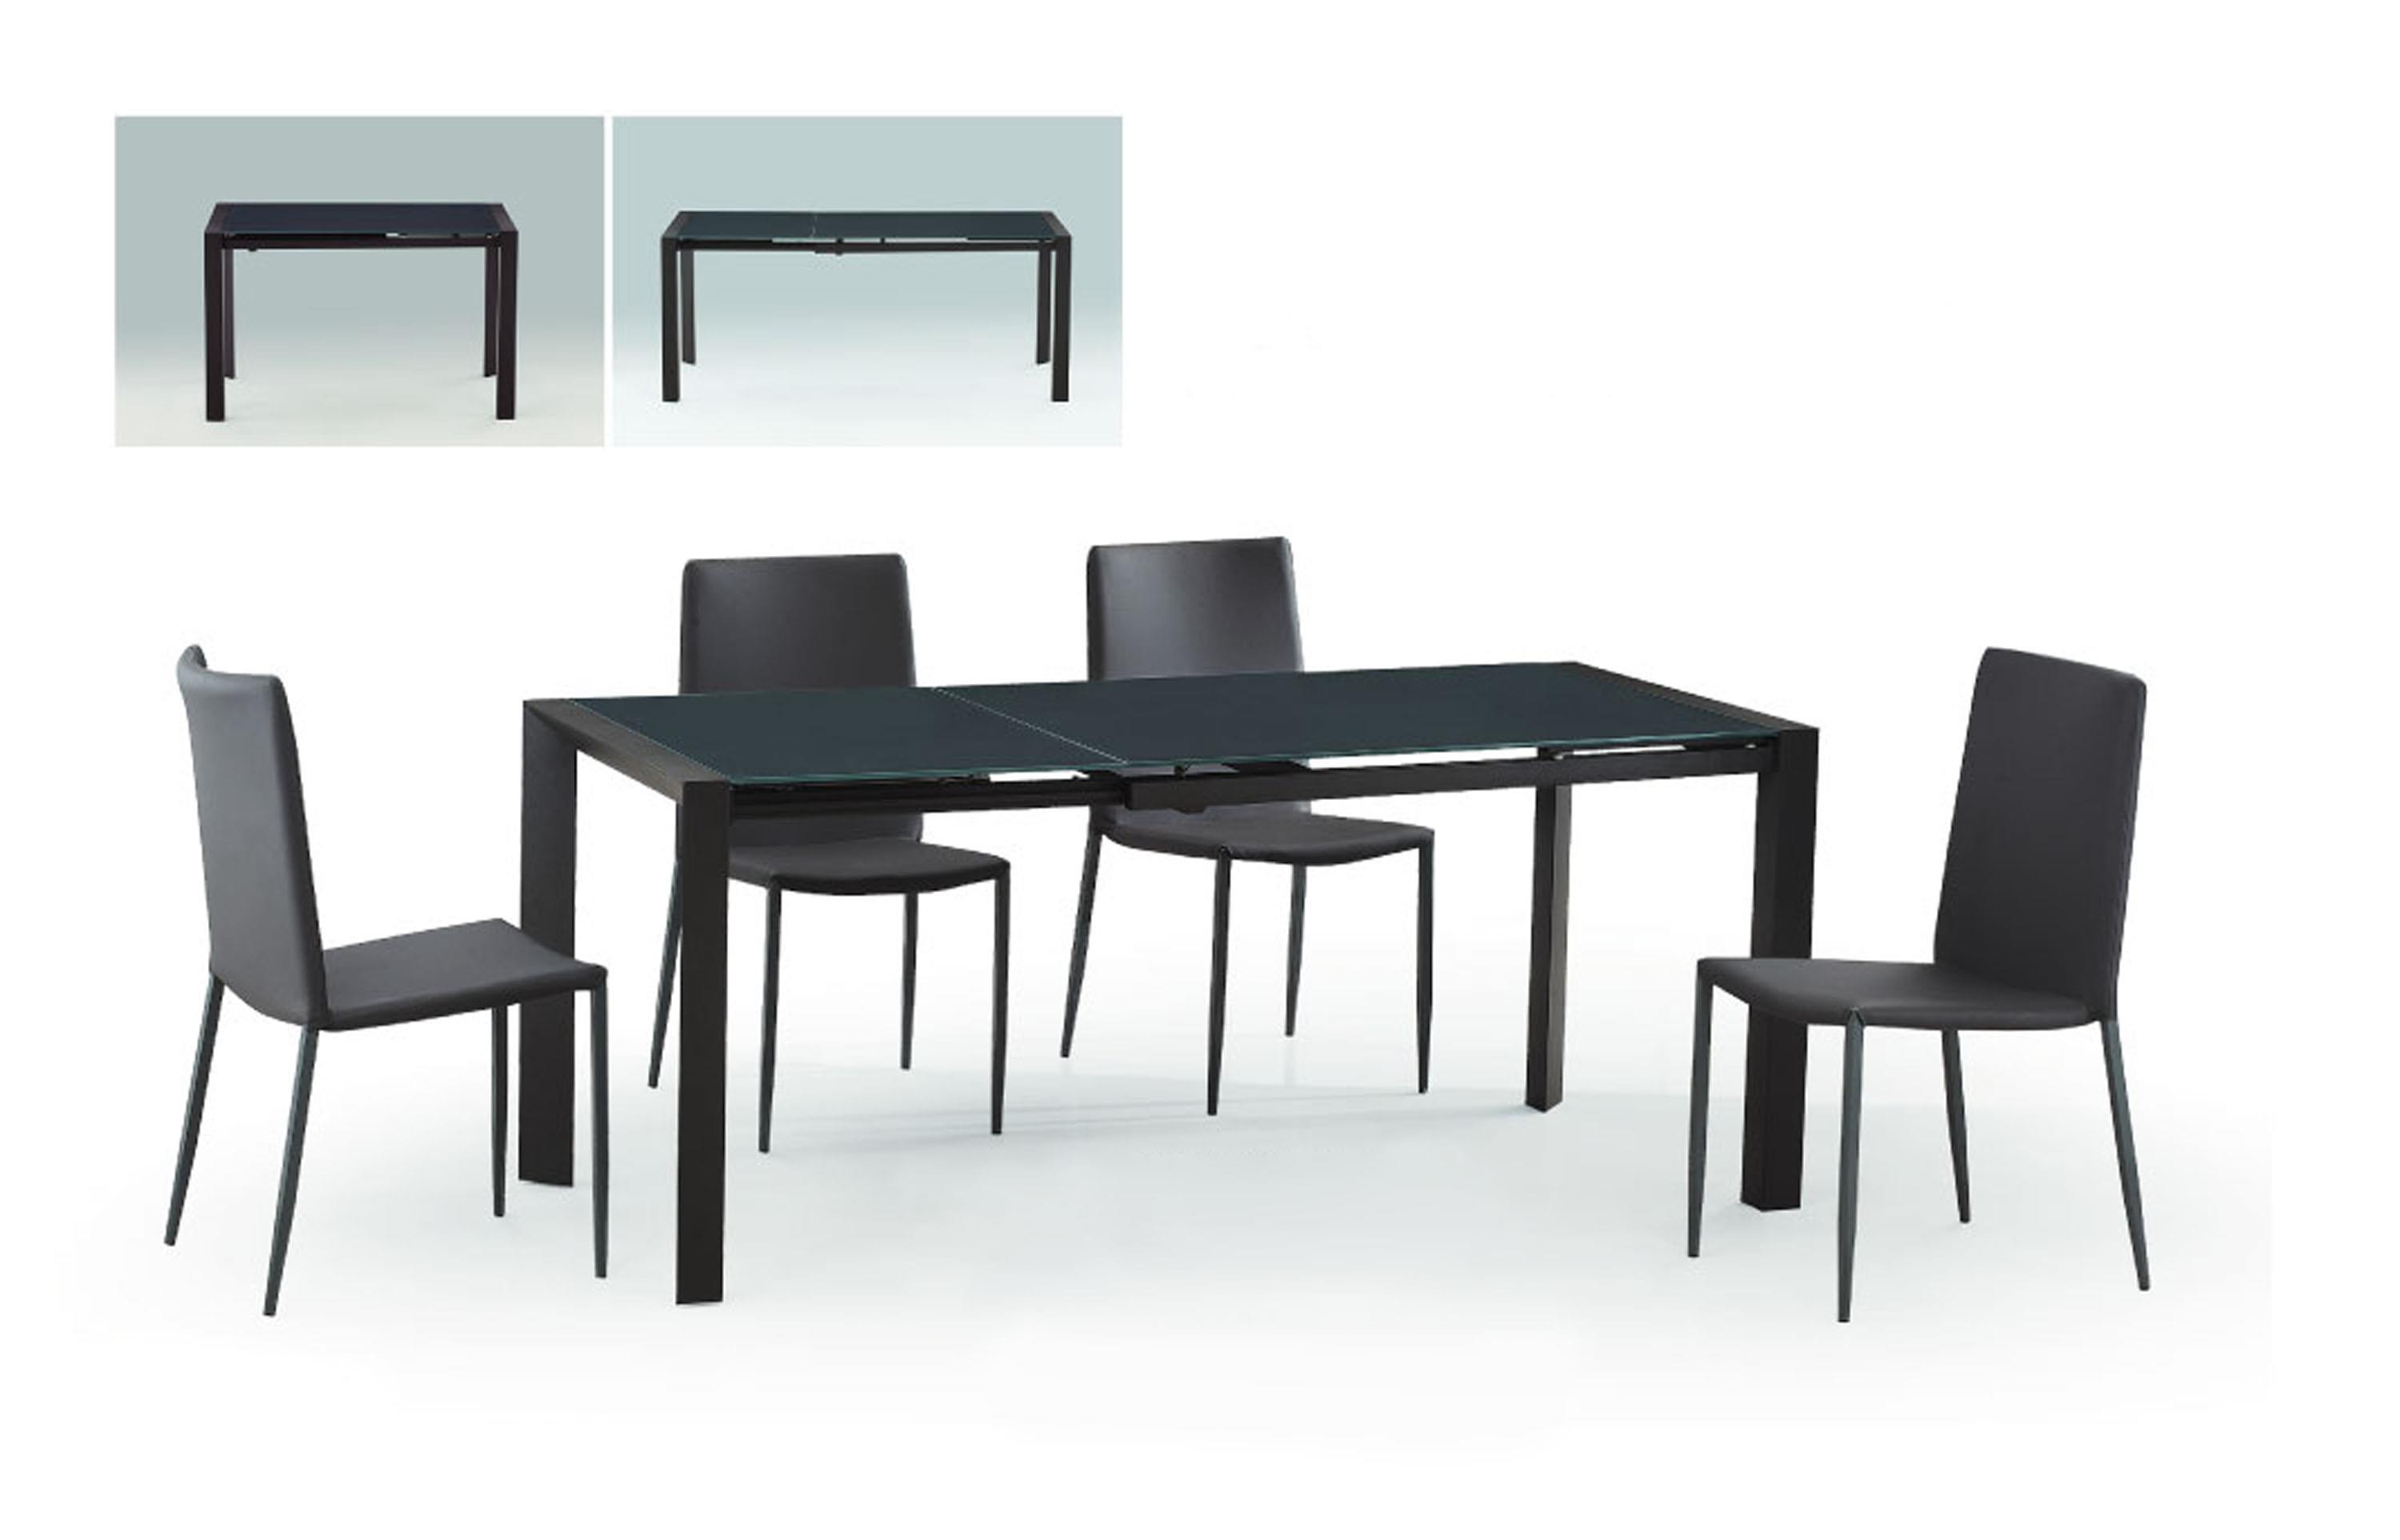 Diamond Sofa Urban Dining  Carbon Glass Top Extension Dining Table - Item Number: CARBONDT